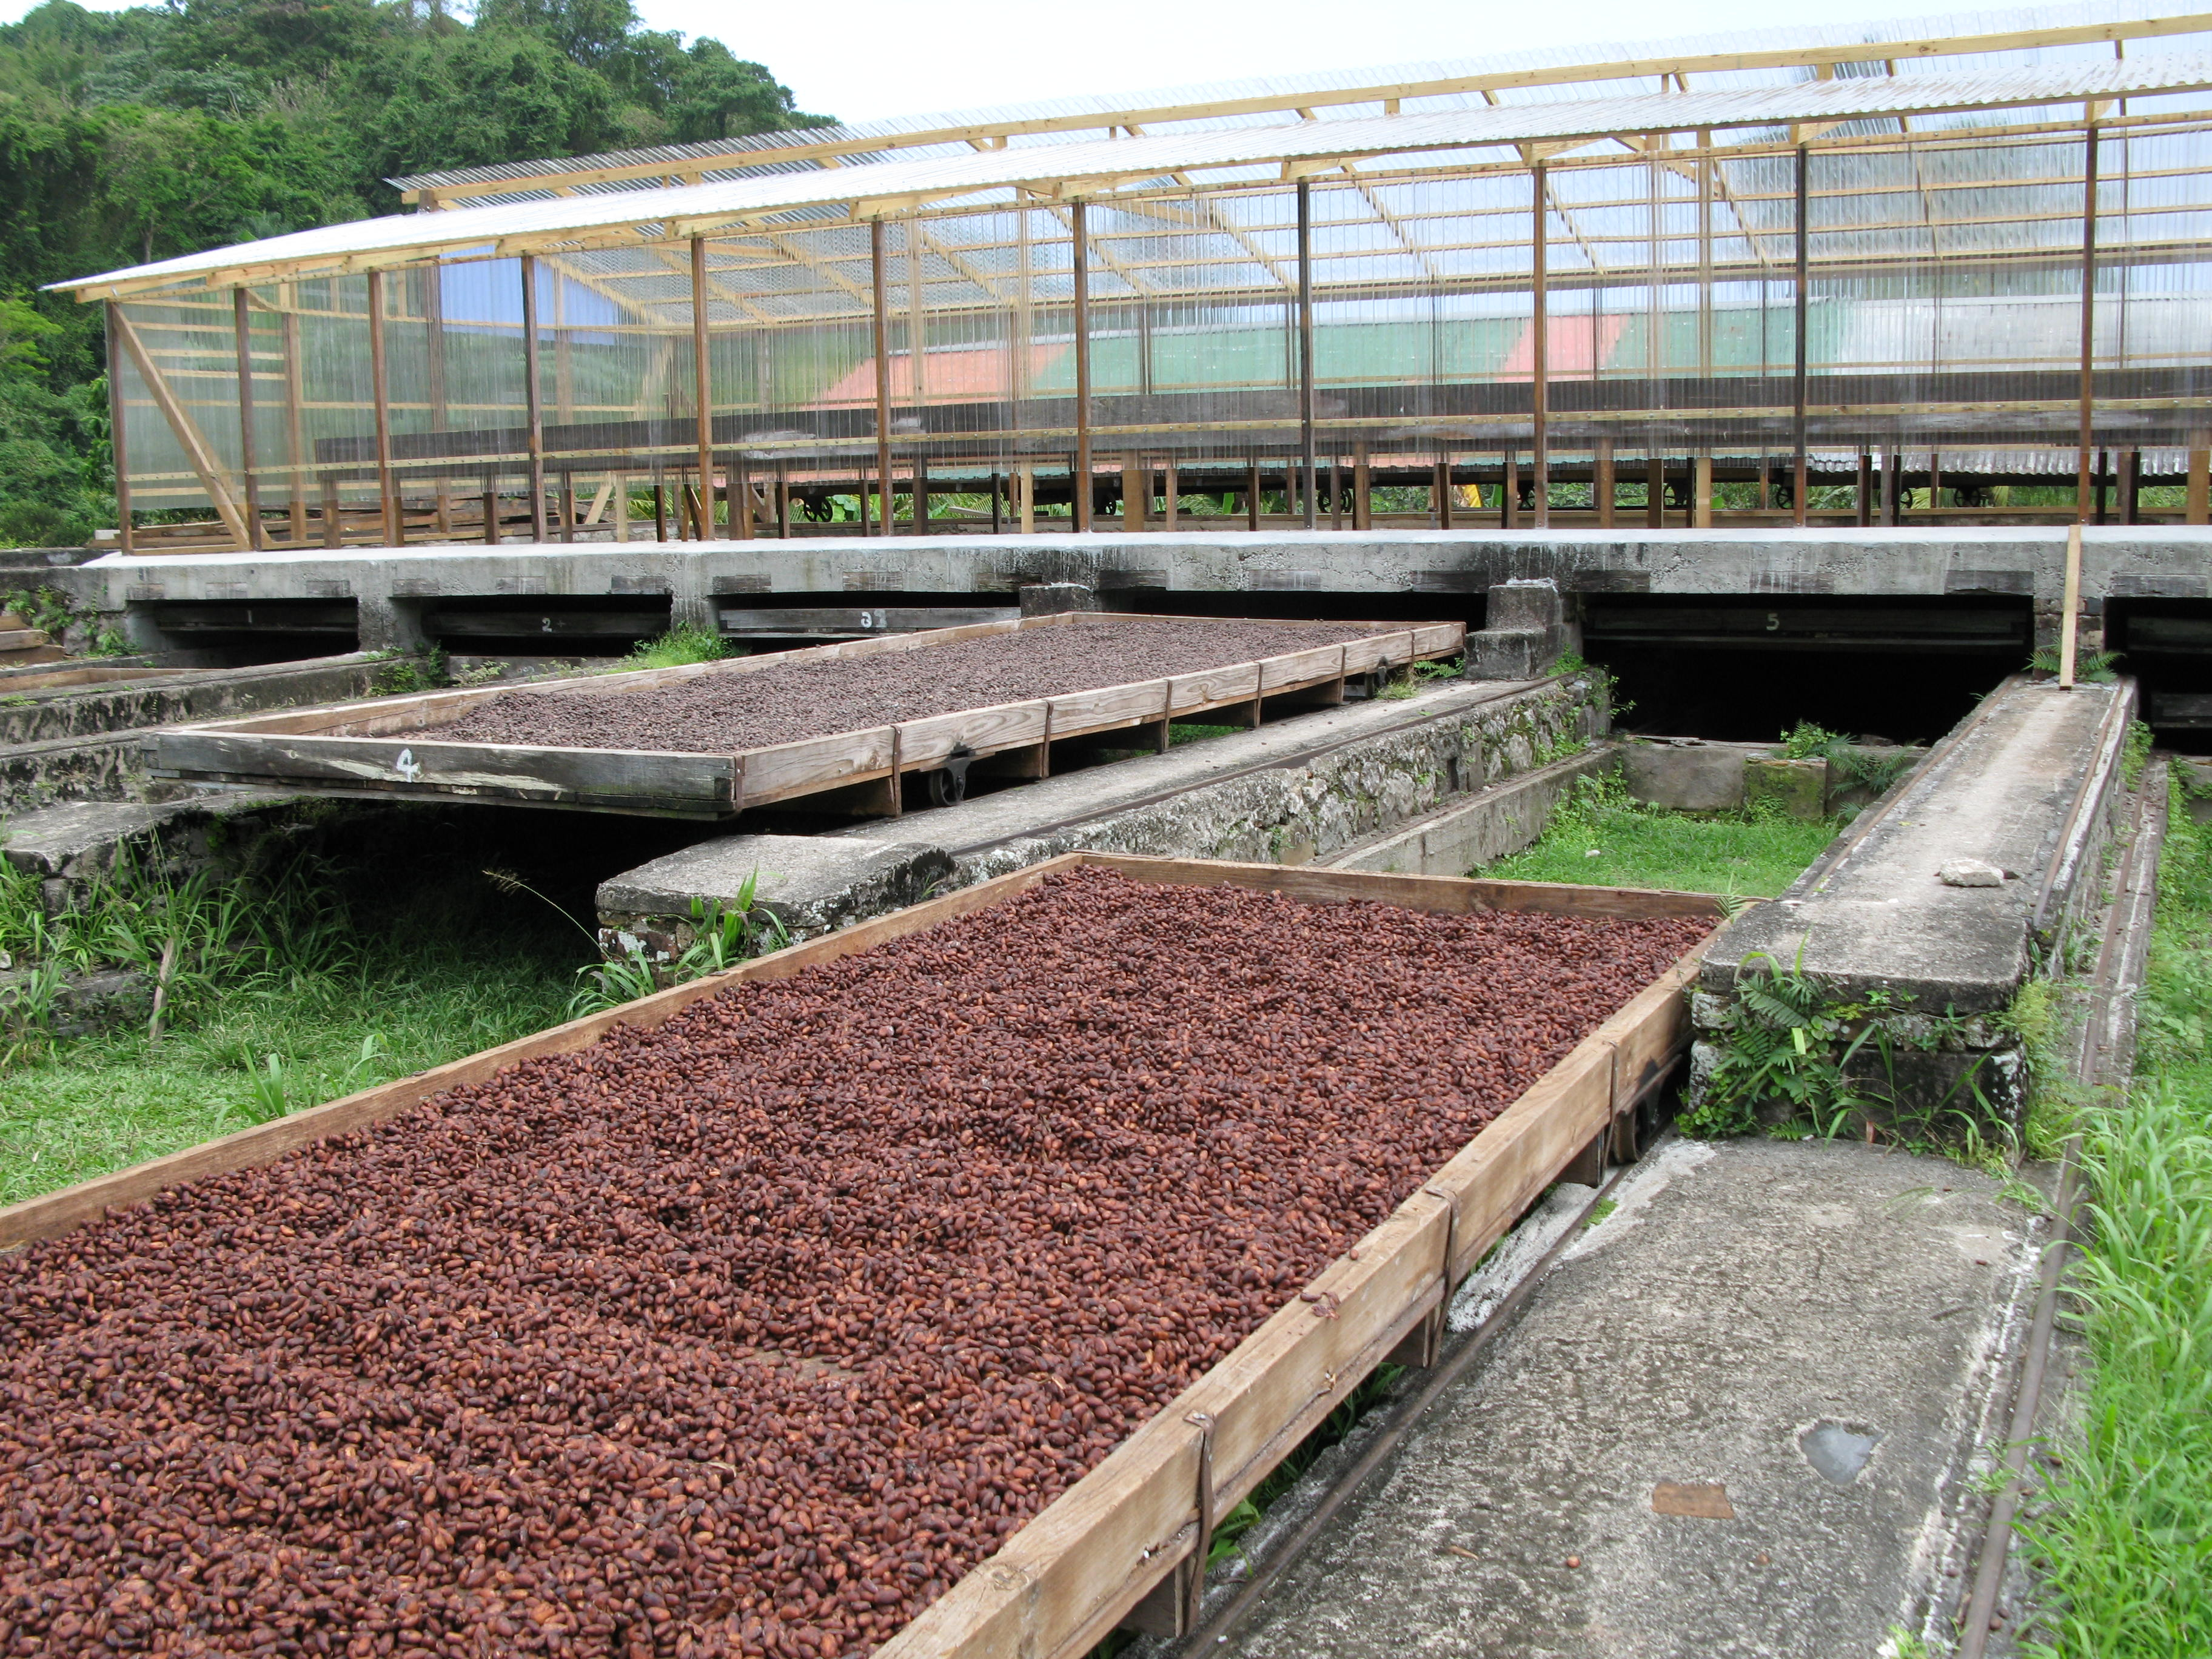 Drying the Cocoa Beans